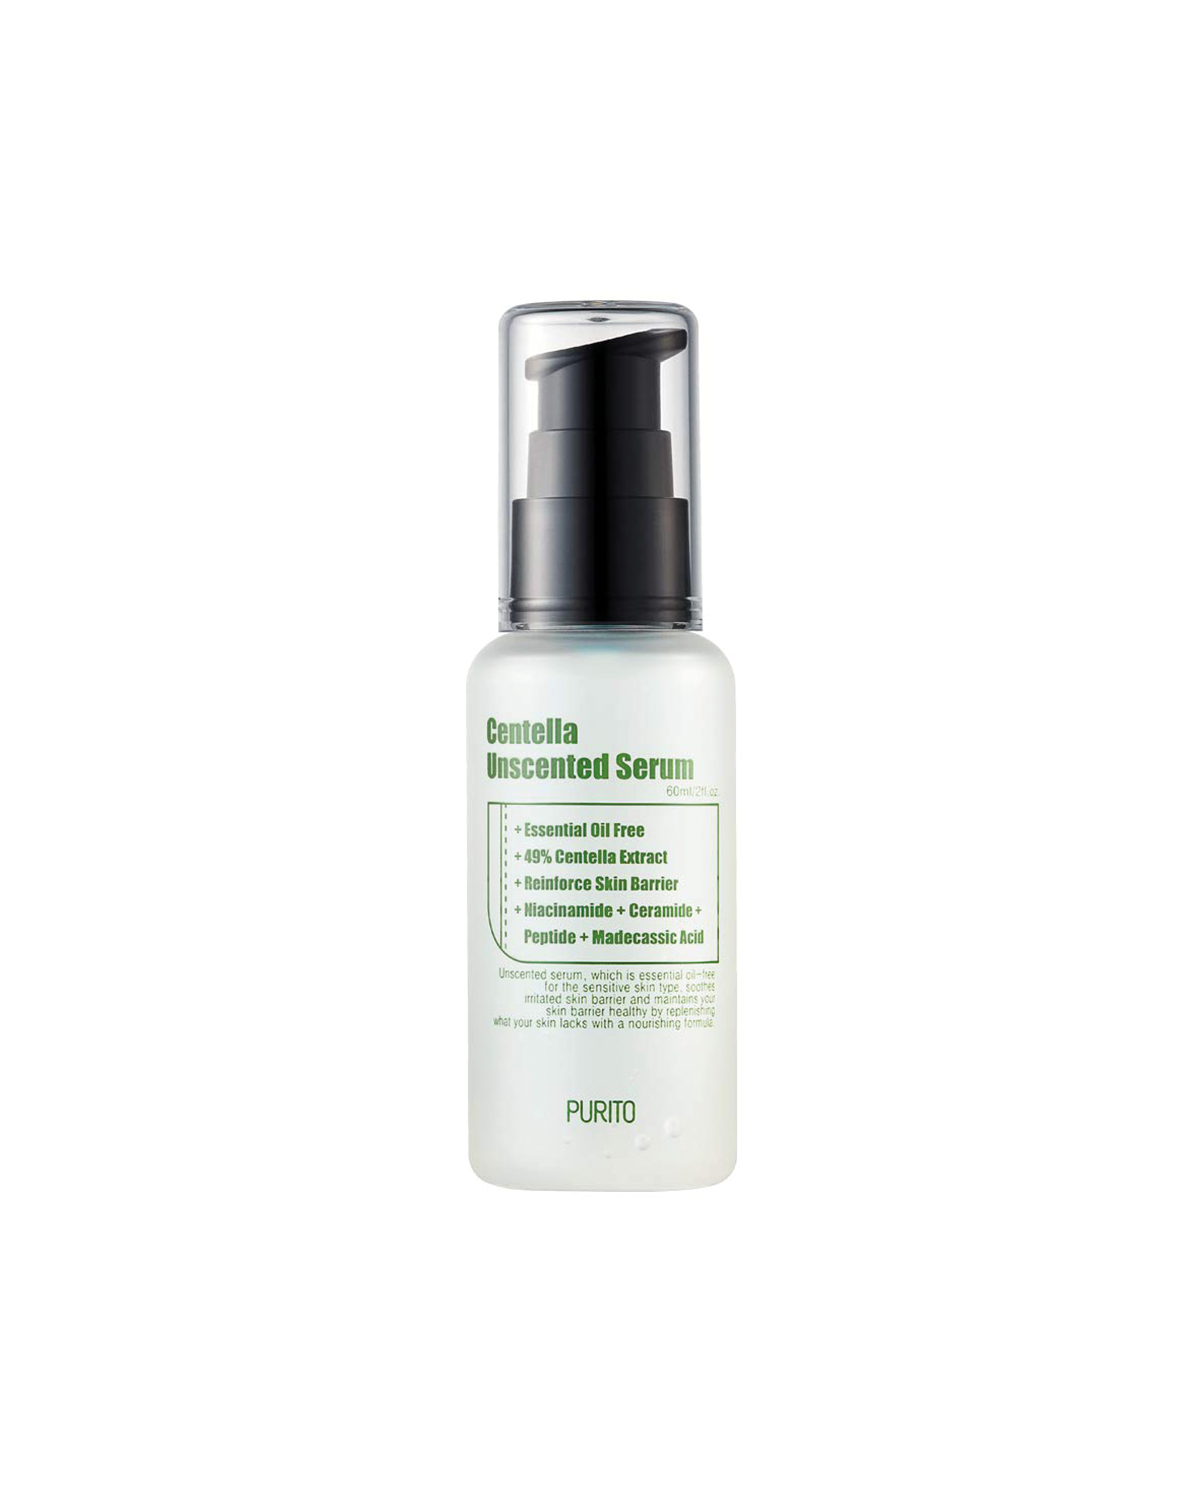 PURITO Centella Unscented Serum 60 ml